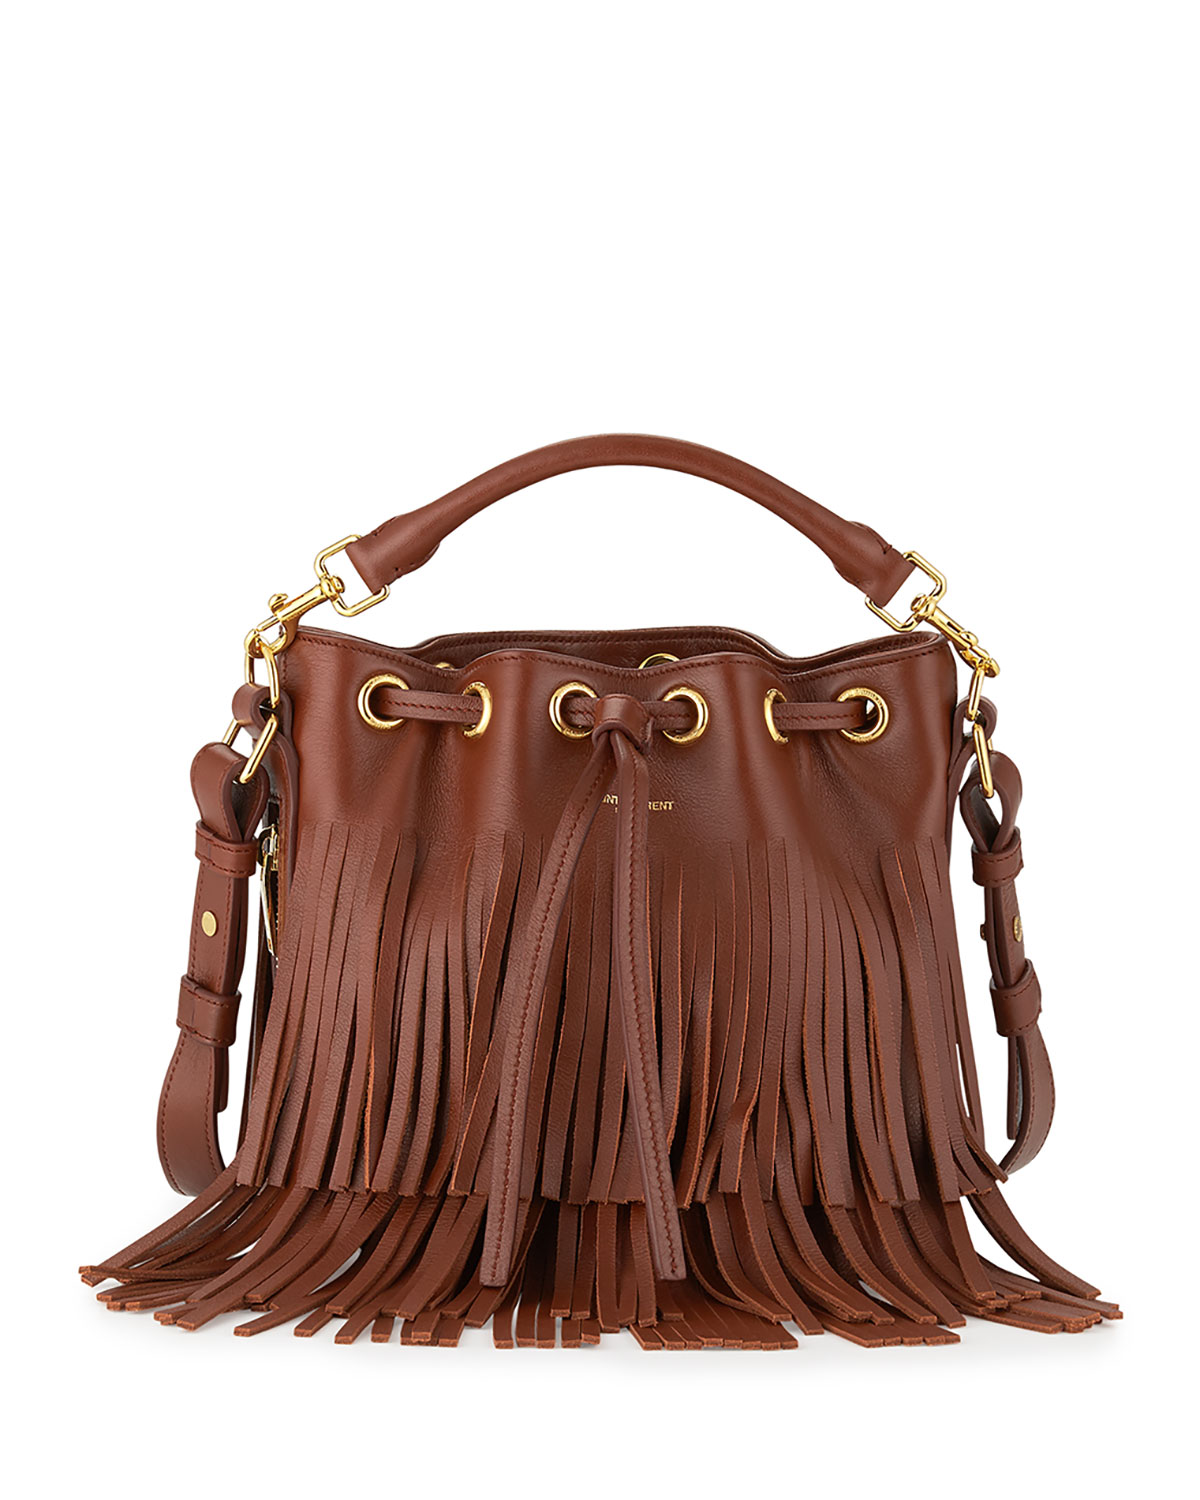 a9d7ba7d96 Saint Laurent Emmanuelle Small Leather Fringe Bucket Bag, Cognac ...